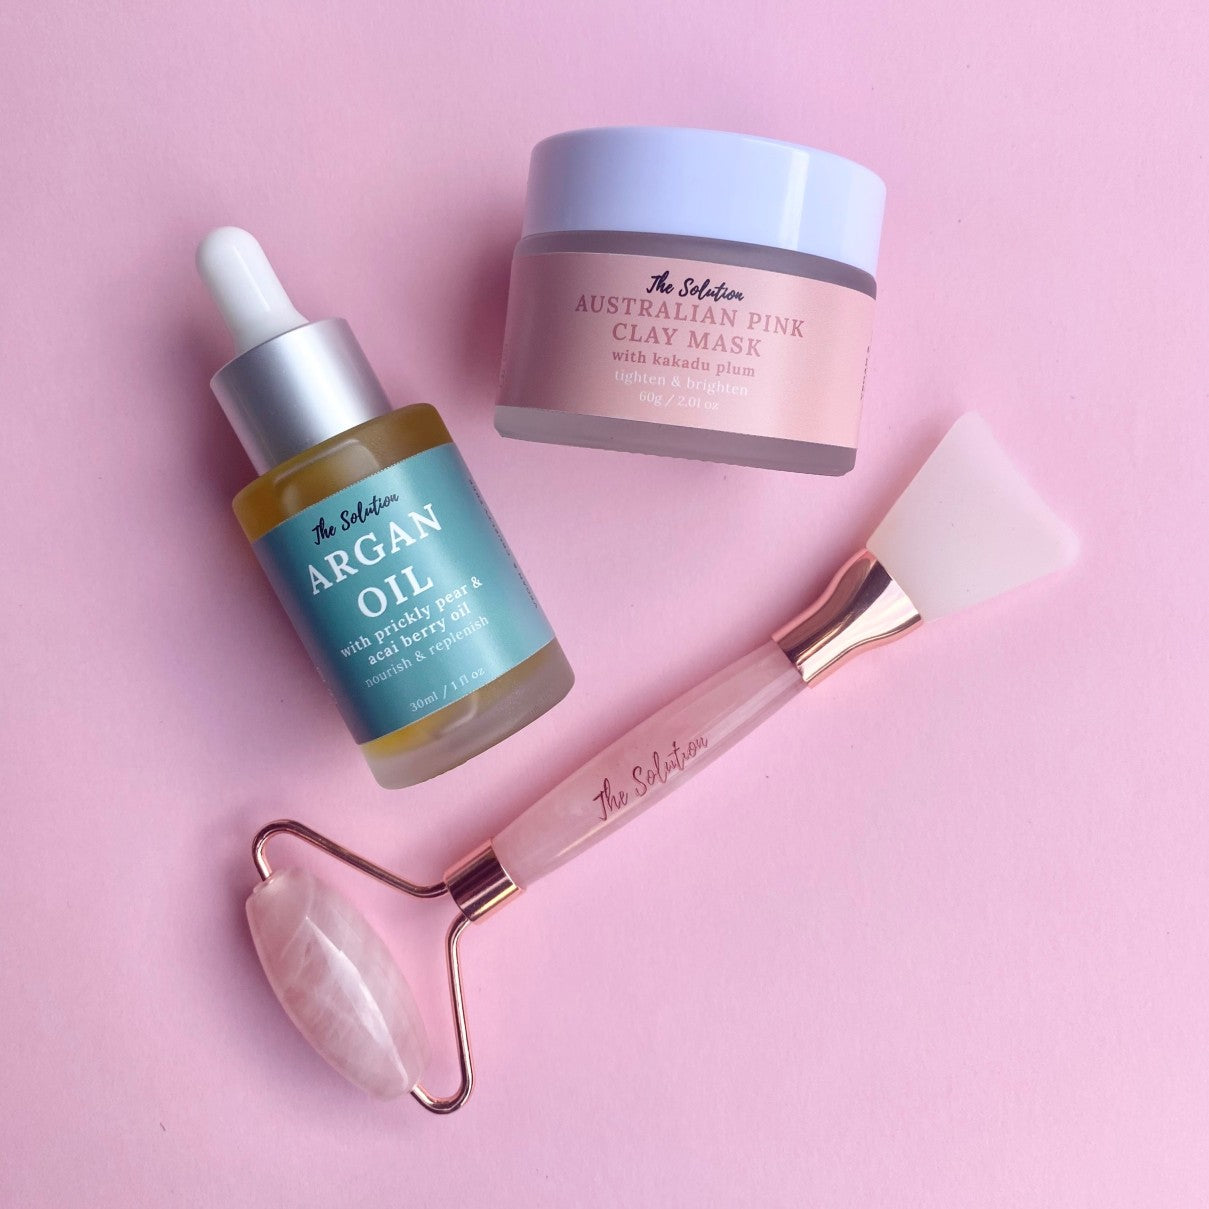 Australian Pink Clay Mask Argan Oil and Rose Quartz 2 in 1 Face Roller and Applicator